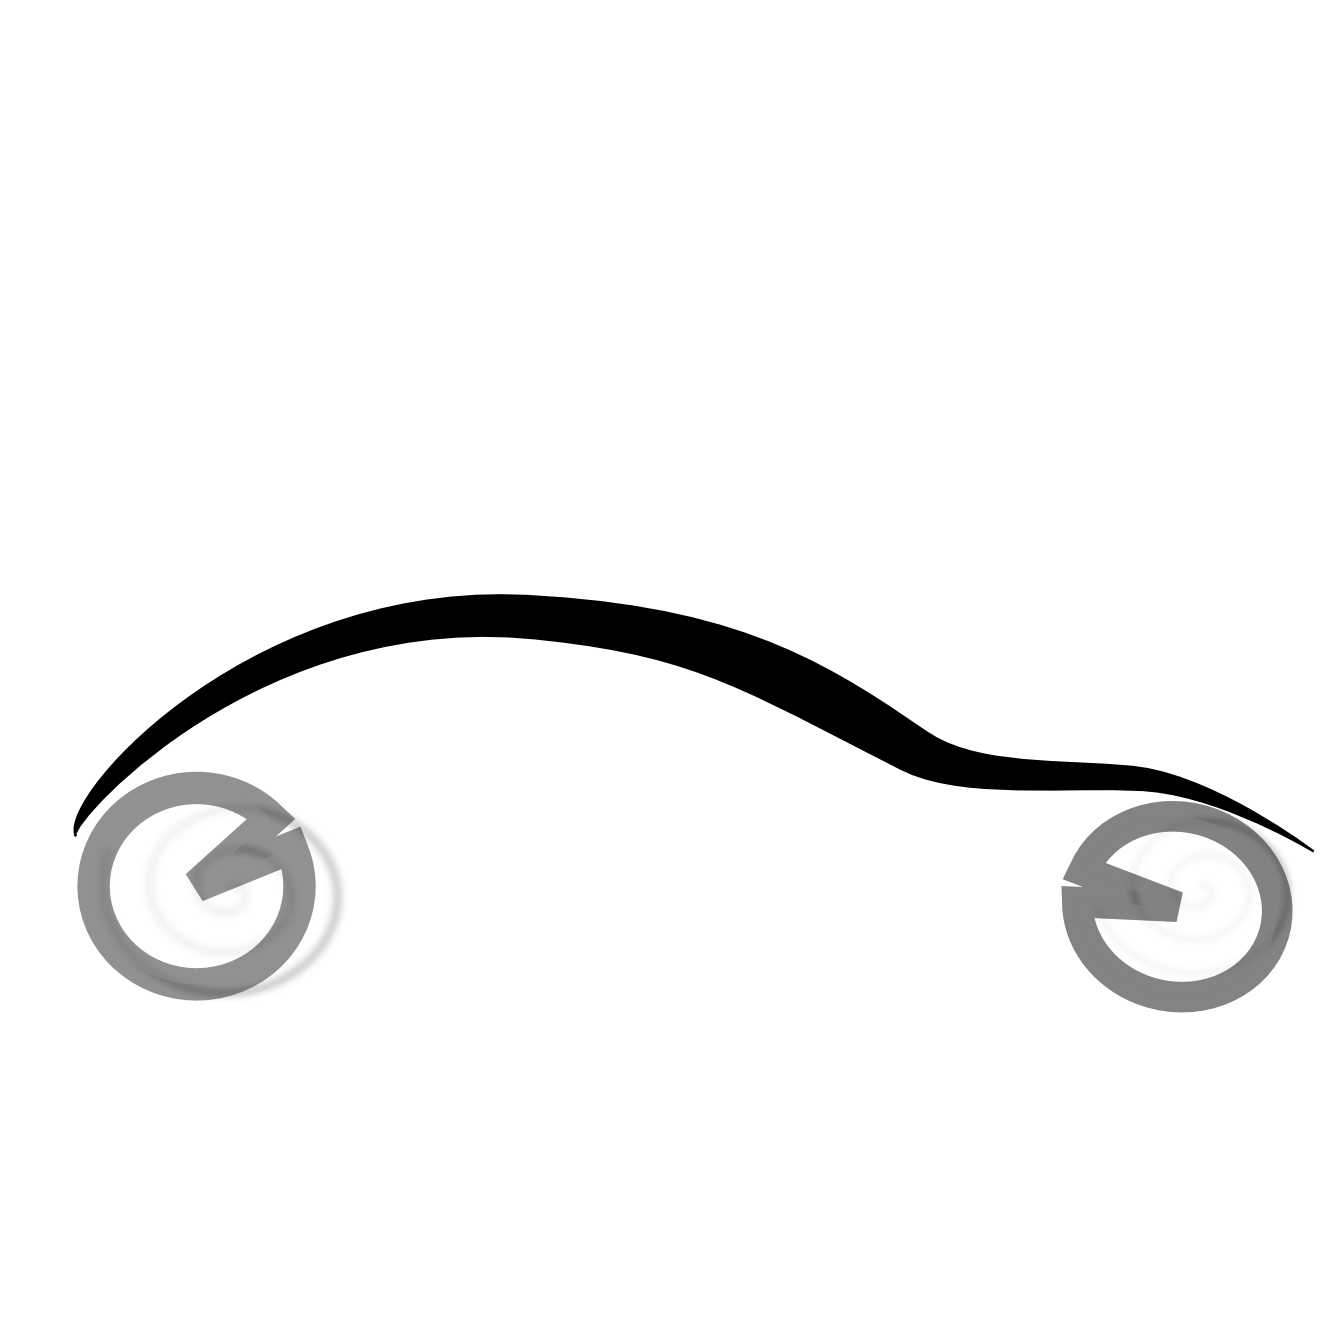 Free Car Line Art, Download Free Clip Art, Free Clip Art on.